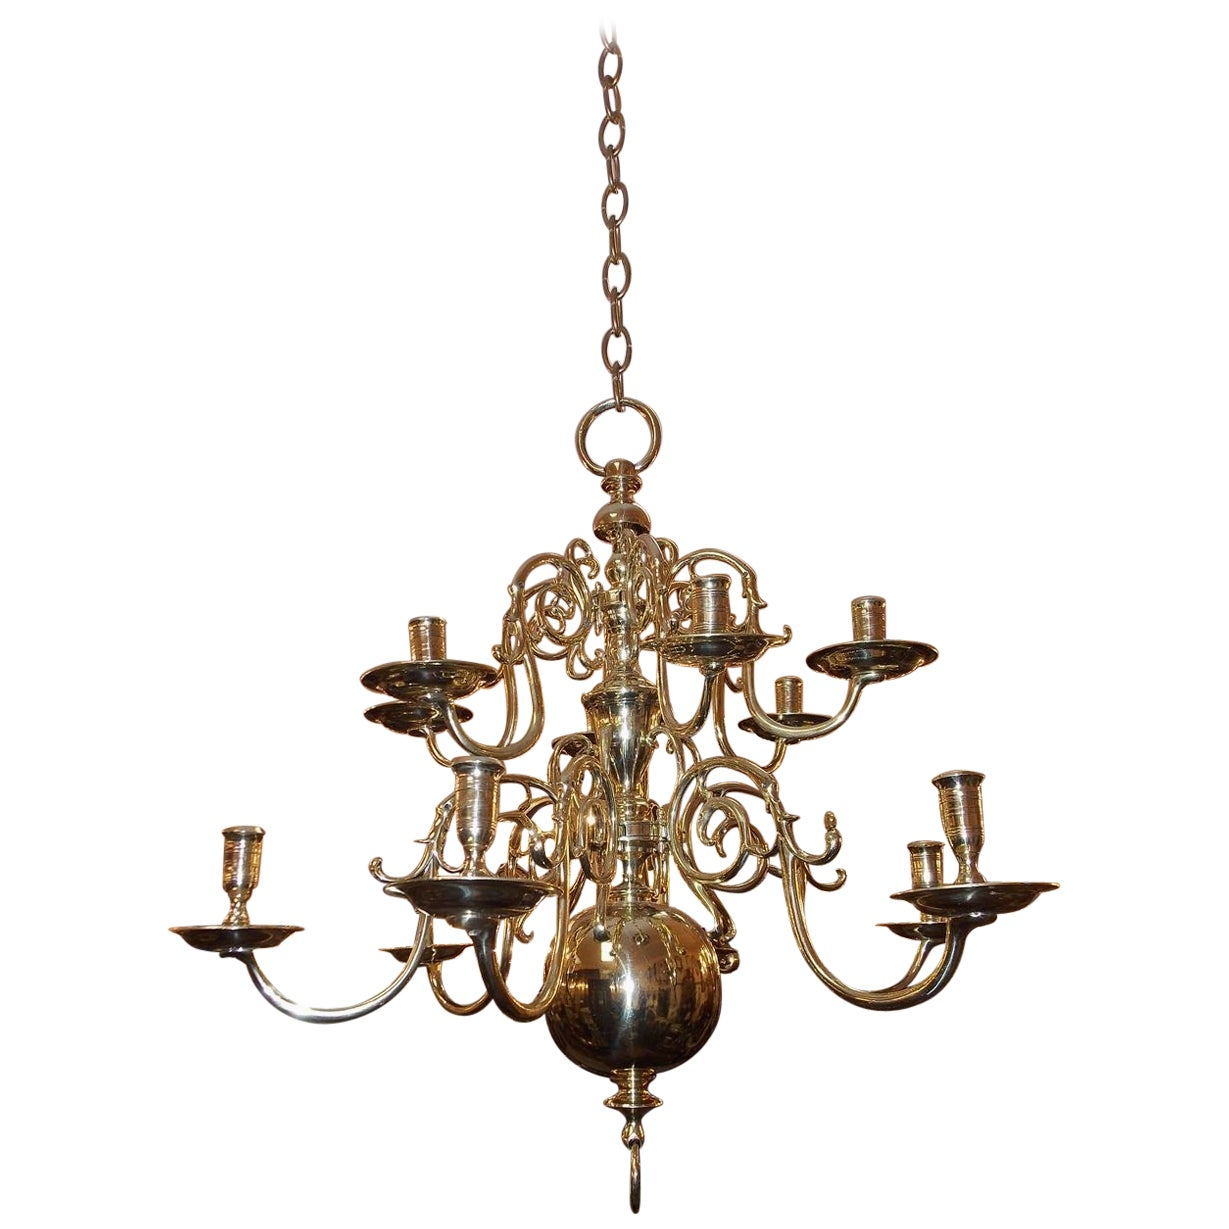 Dutch Colonial Brass Two-Tier Bulbous and Scrolled Chandelier, Circa 1760